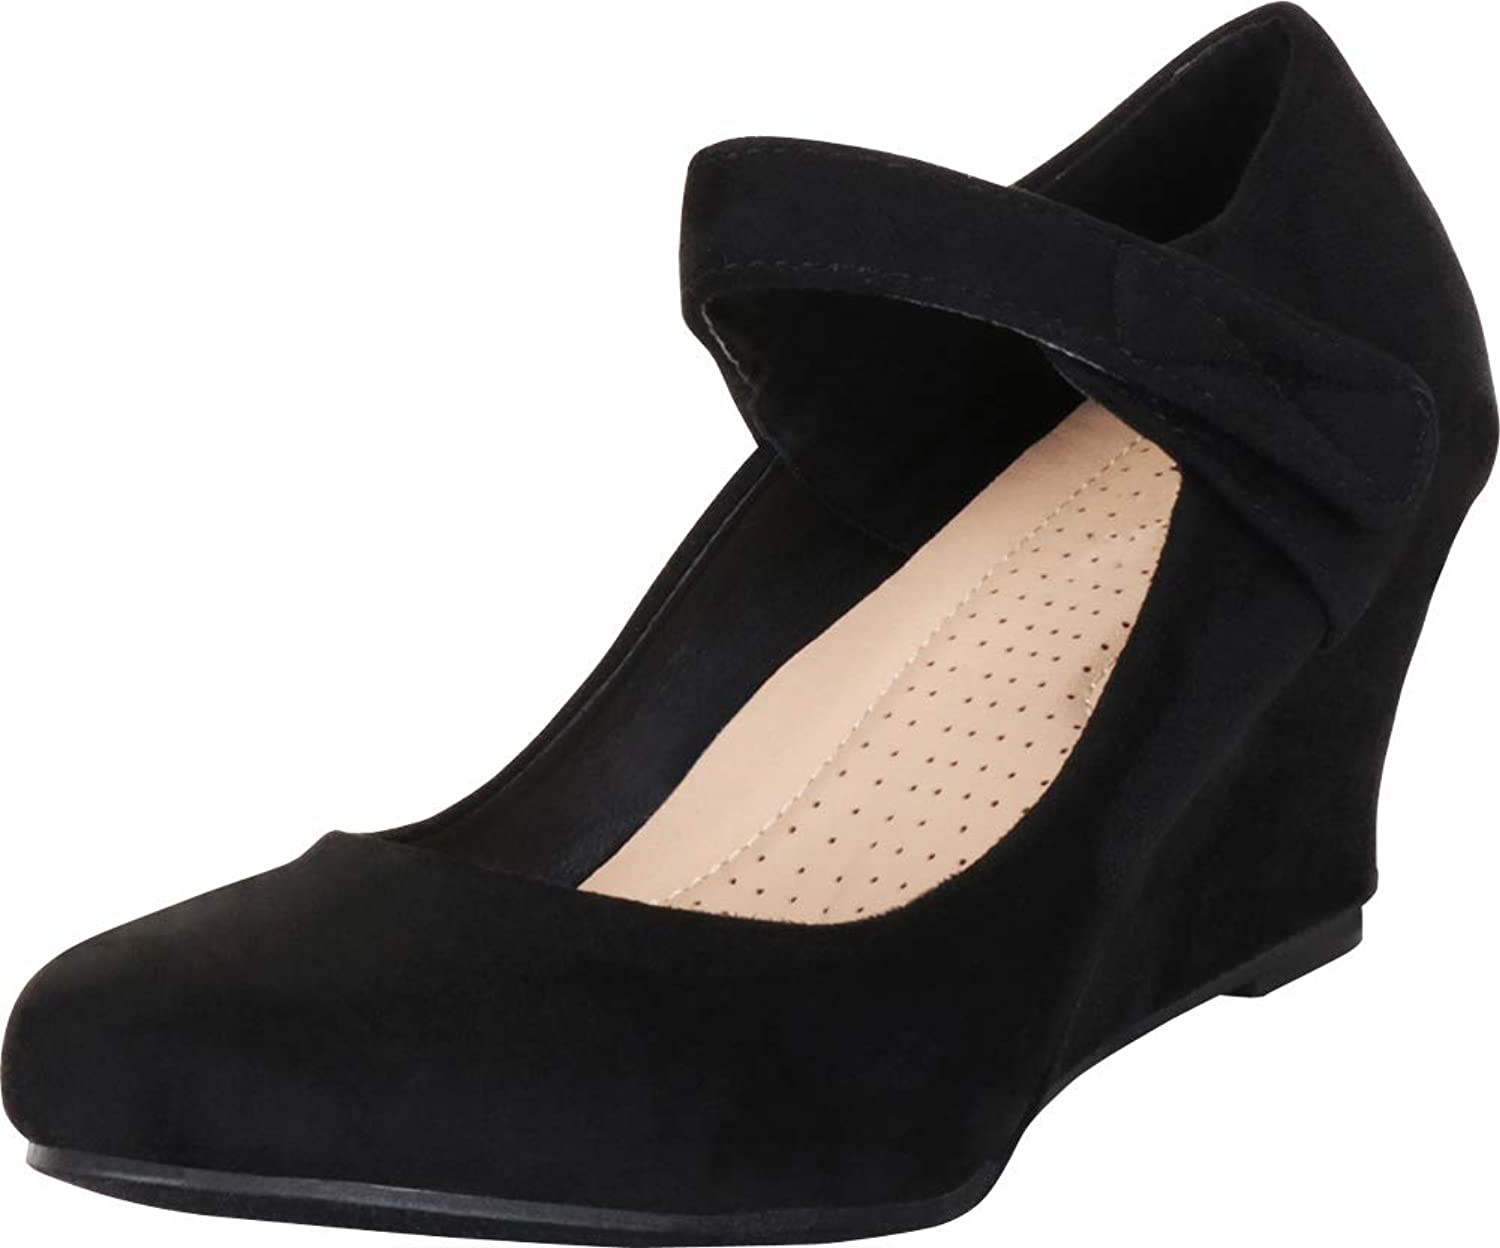 Cambridge Select Women's Round Toe Mary Jane Strap Wrapped Wedge